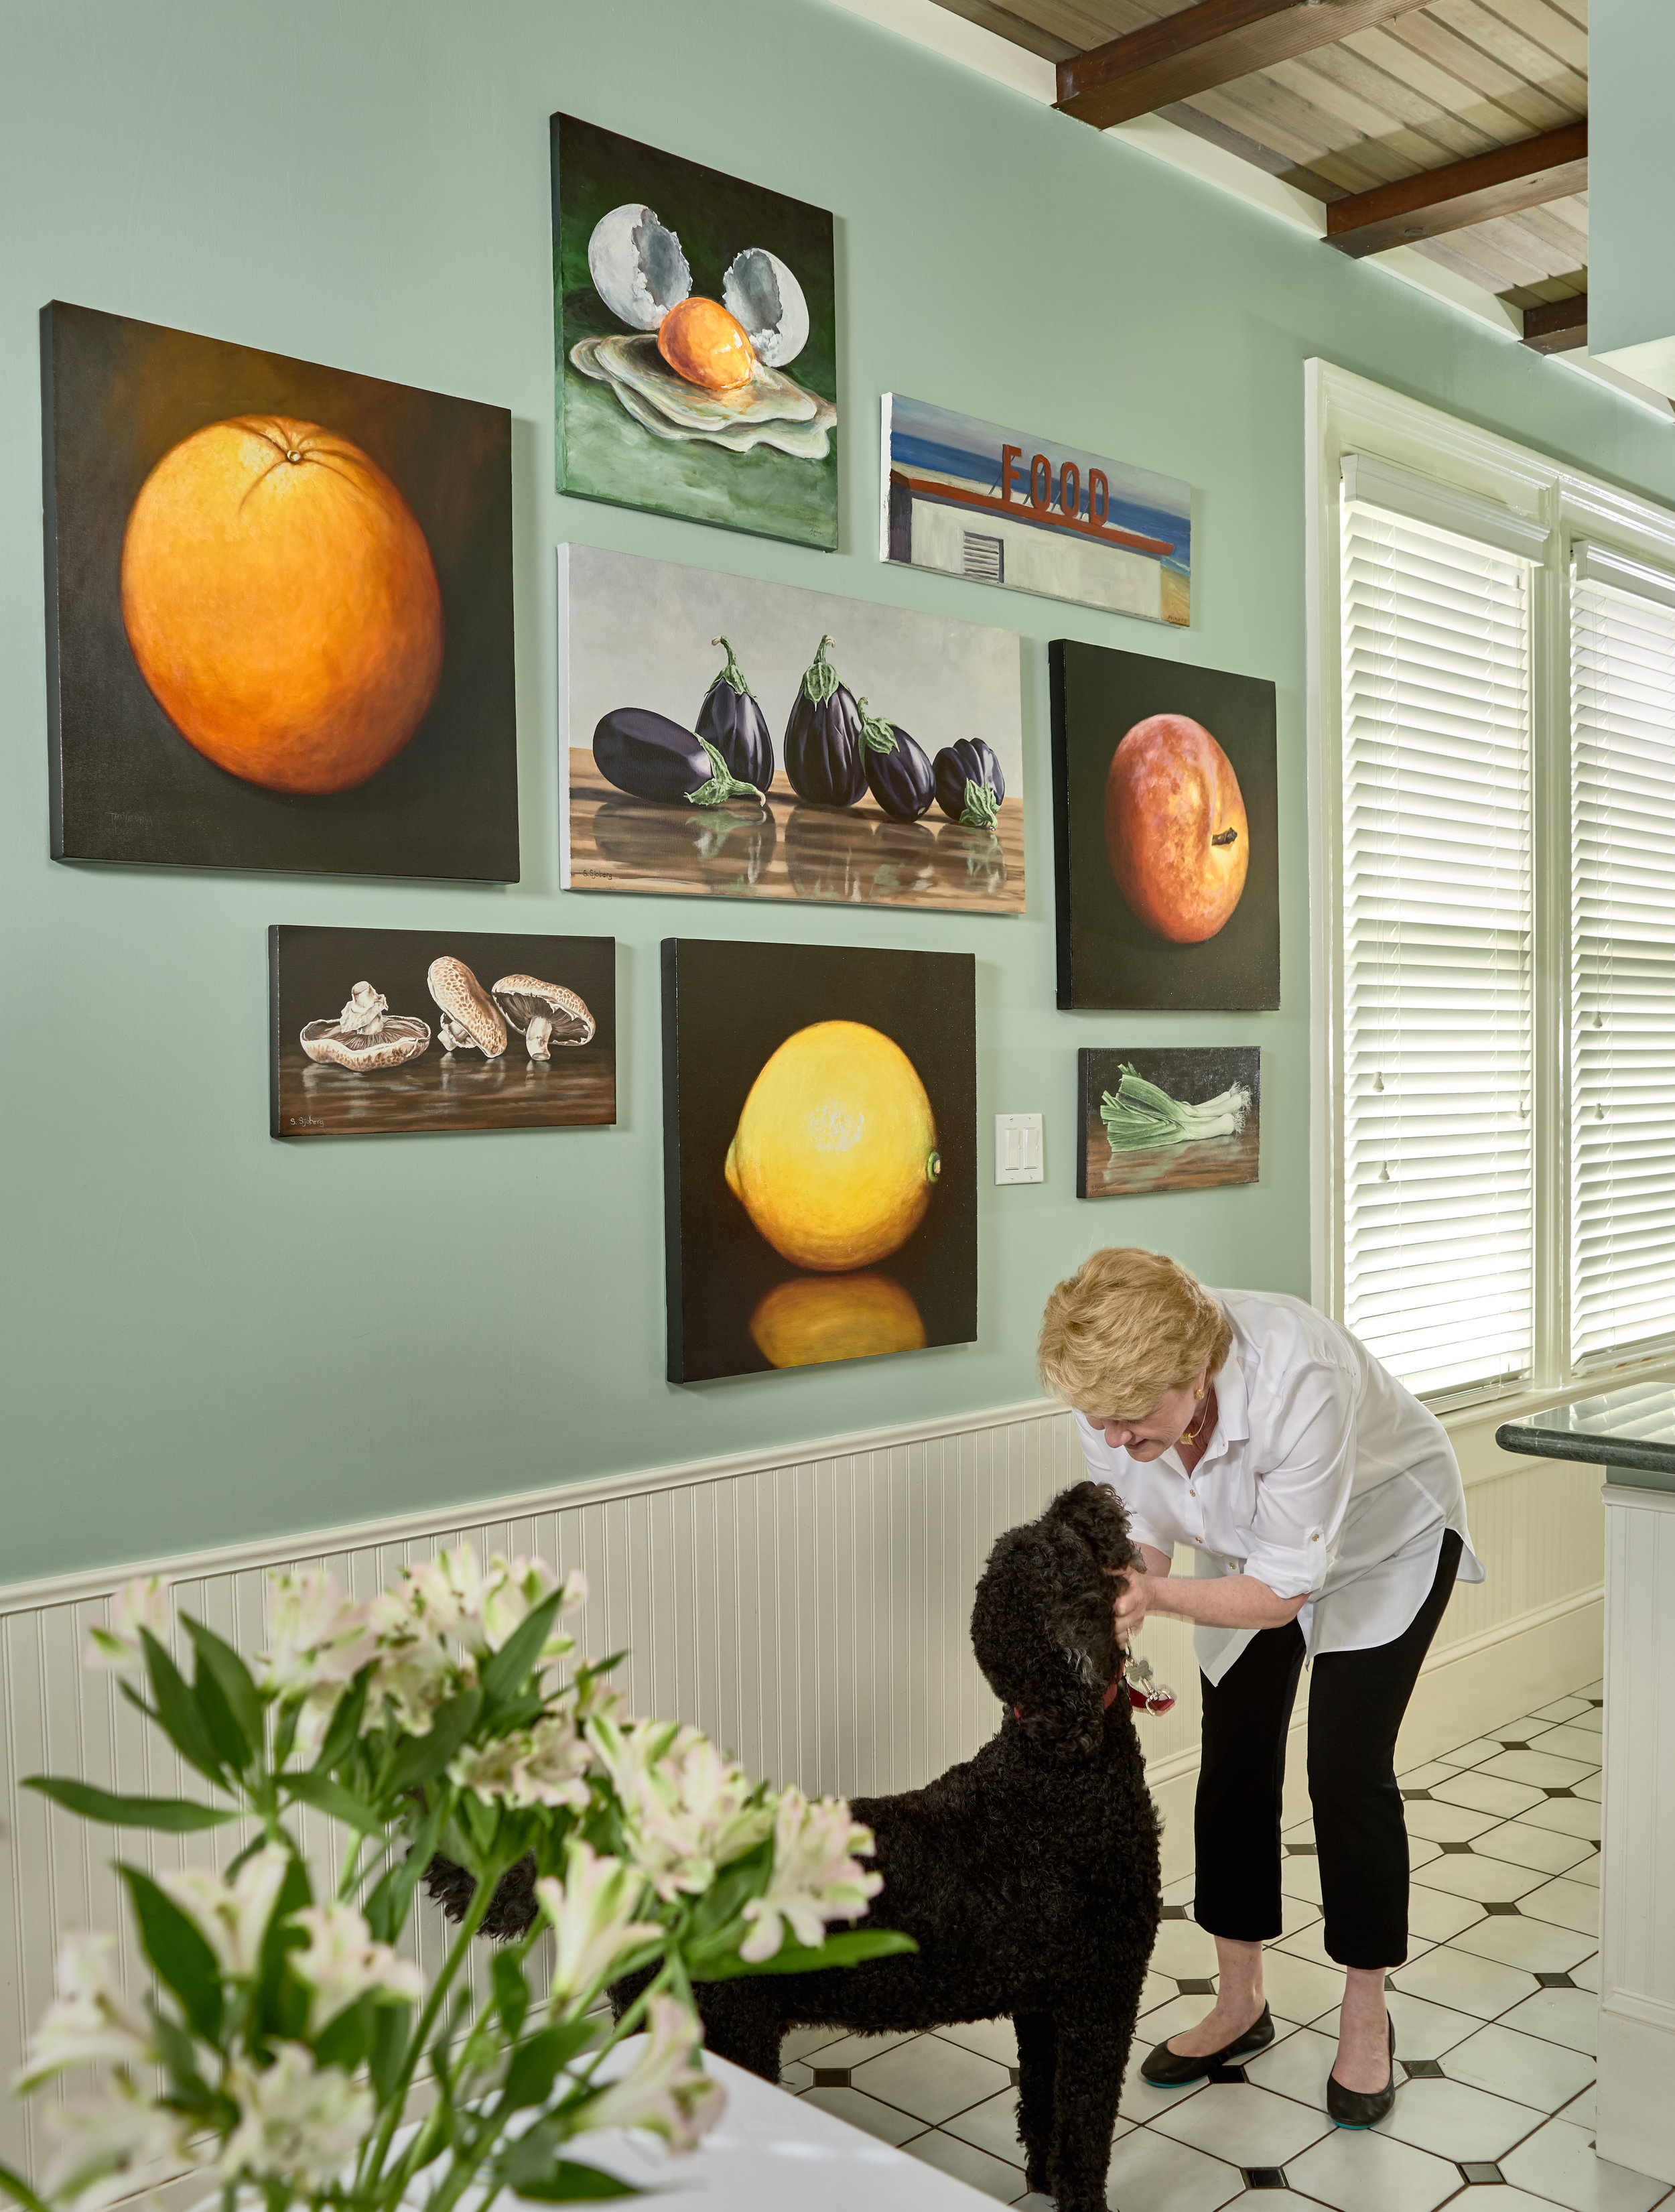 C.H. and her dog in front of a culinary-themed gallery wall including artwork by UGallery artists  Kristine Kainer ,  Susan Sjoberg ,  Tami Cardnella , and  John Kilduff .